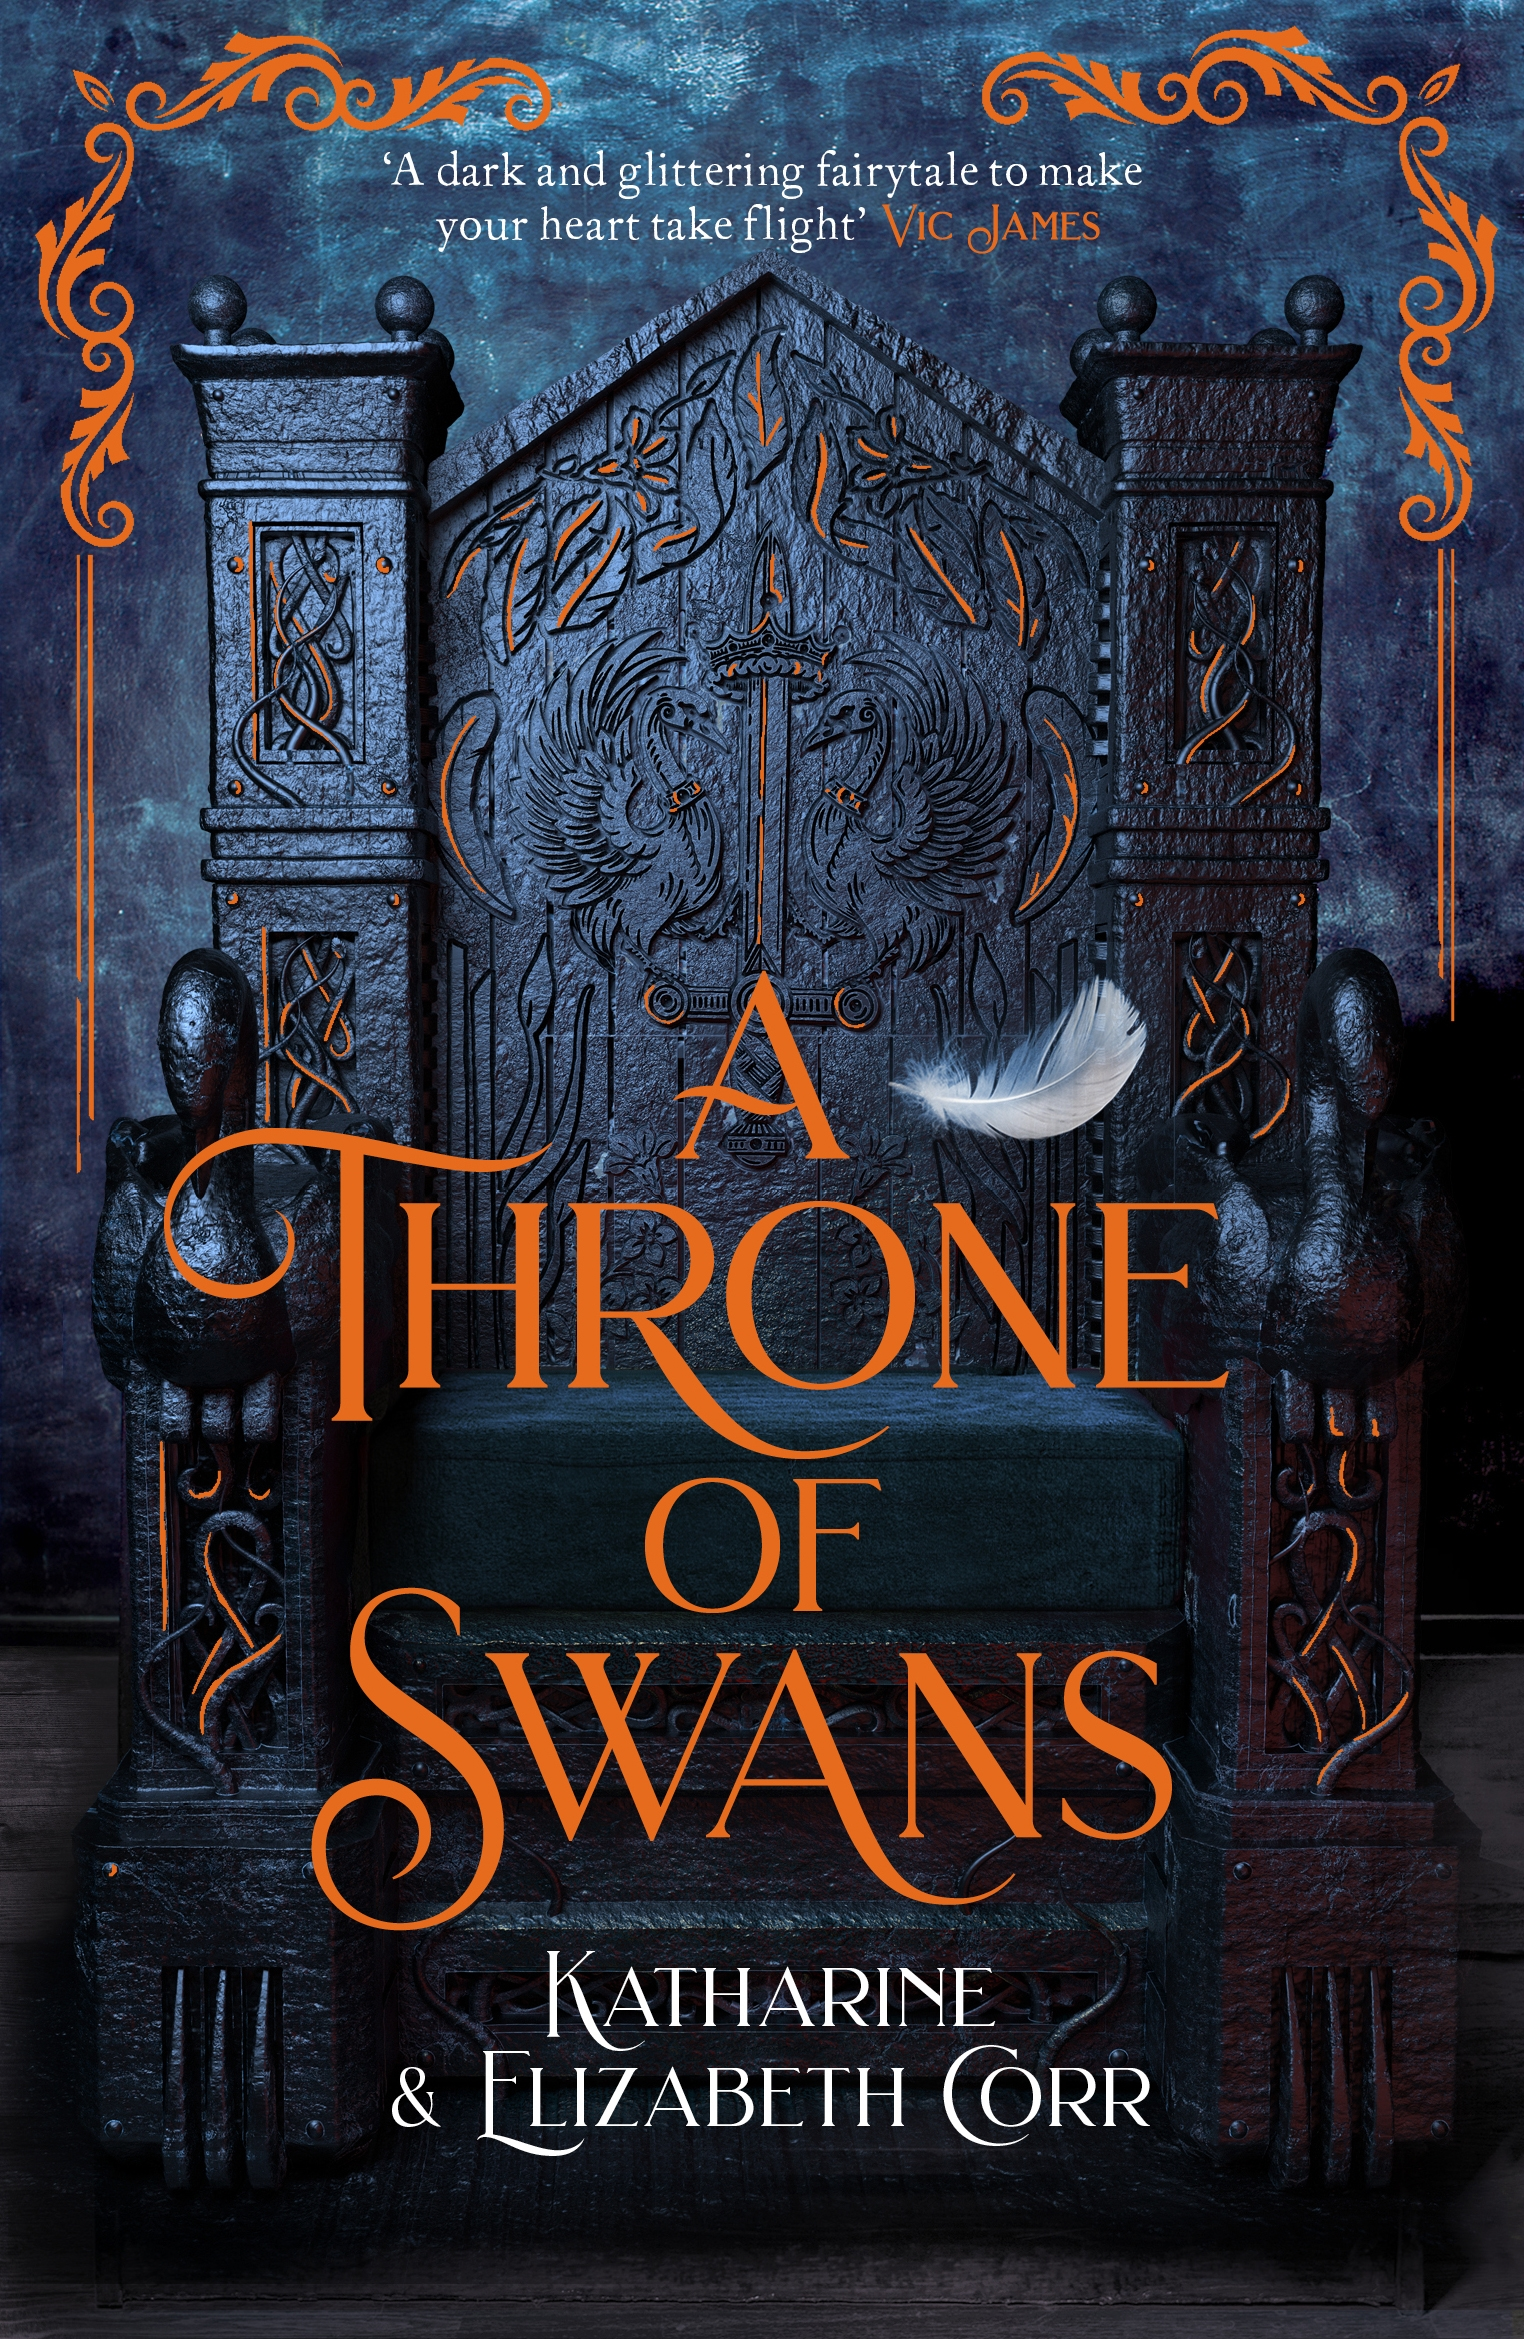 A Throne of Swans by Elizabeth CorrKatharine Corr